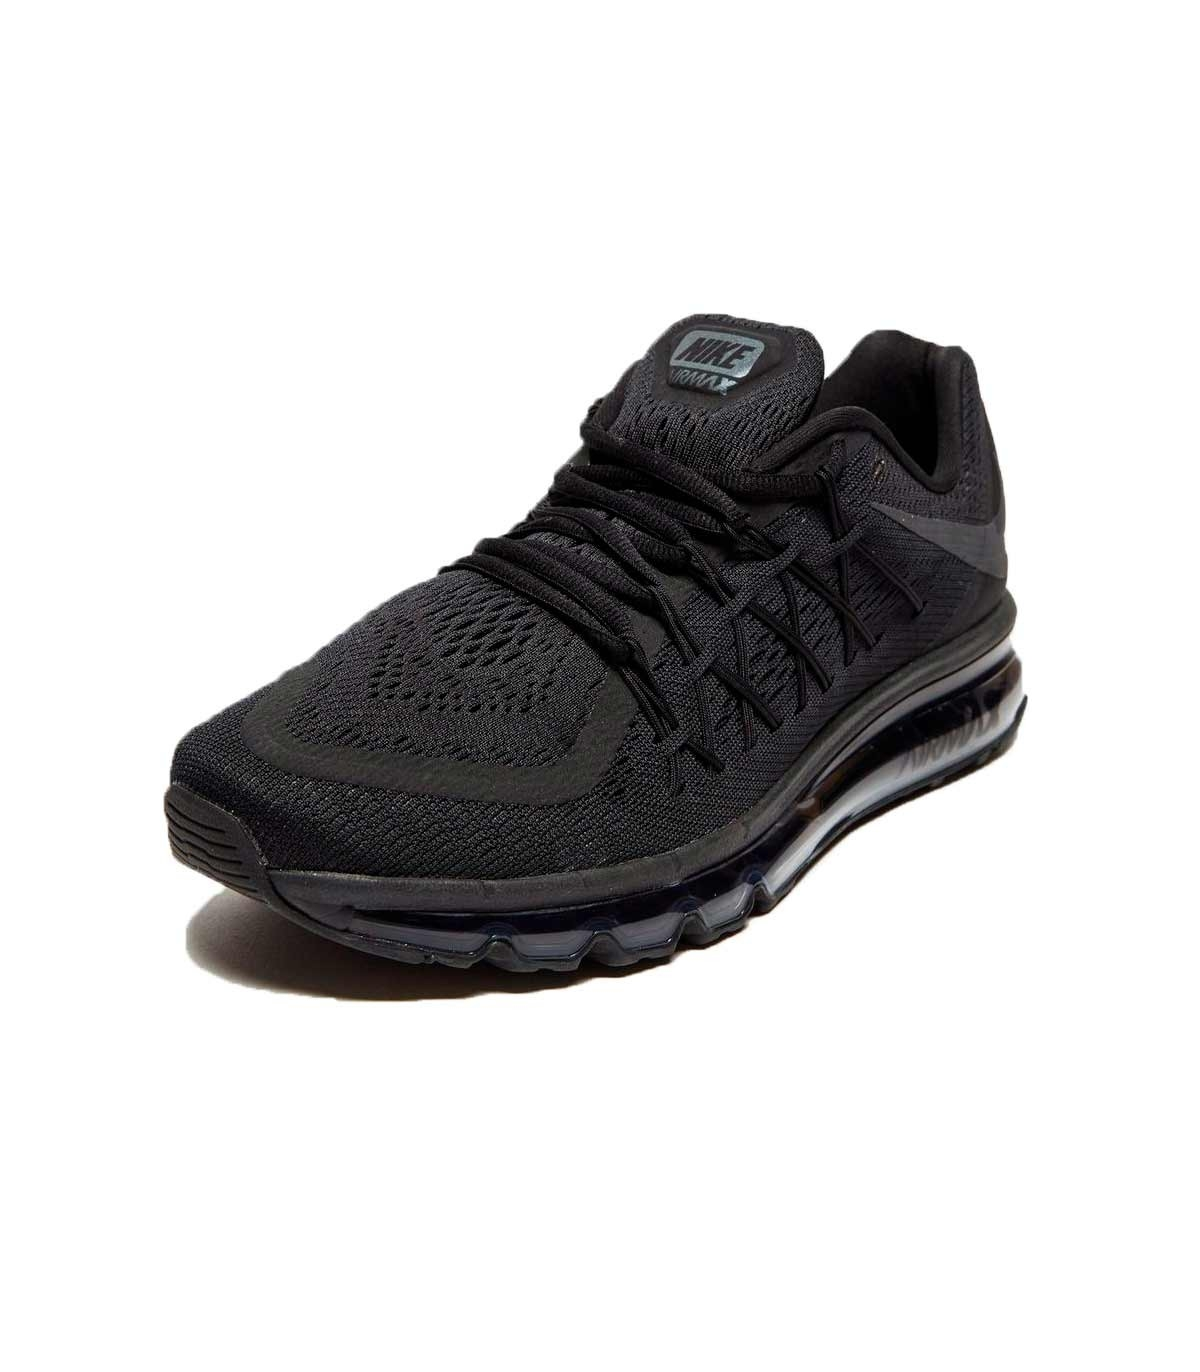 b9e8eb39fabdb Buy Zapatilla Nike Air Max 2015